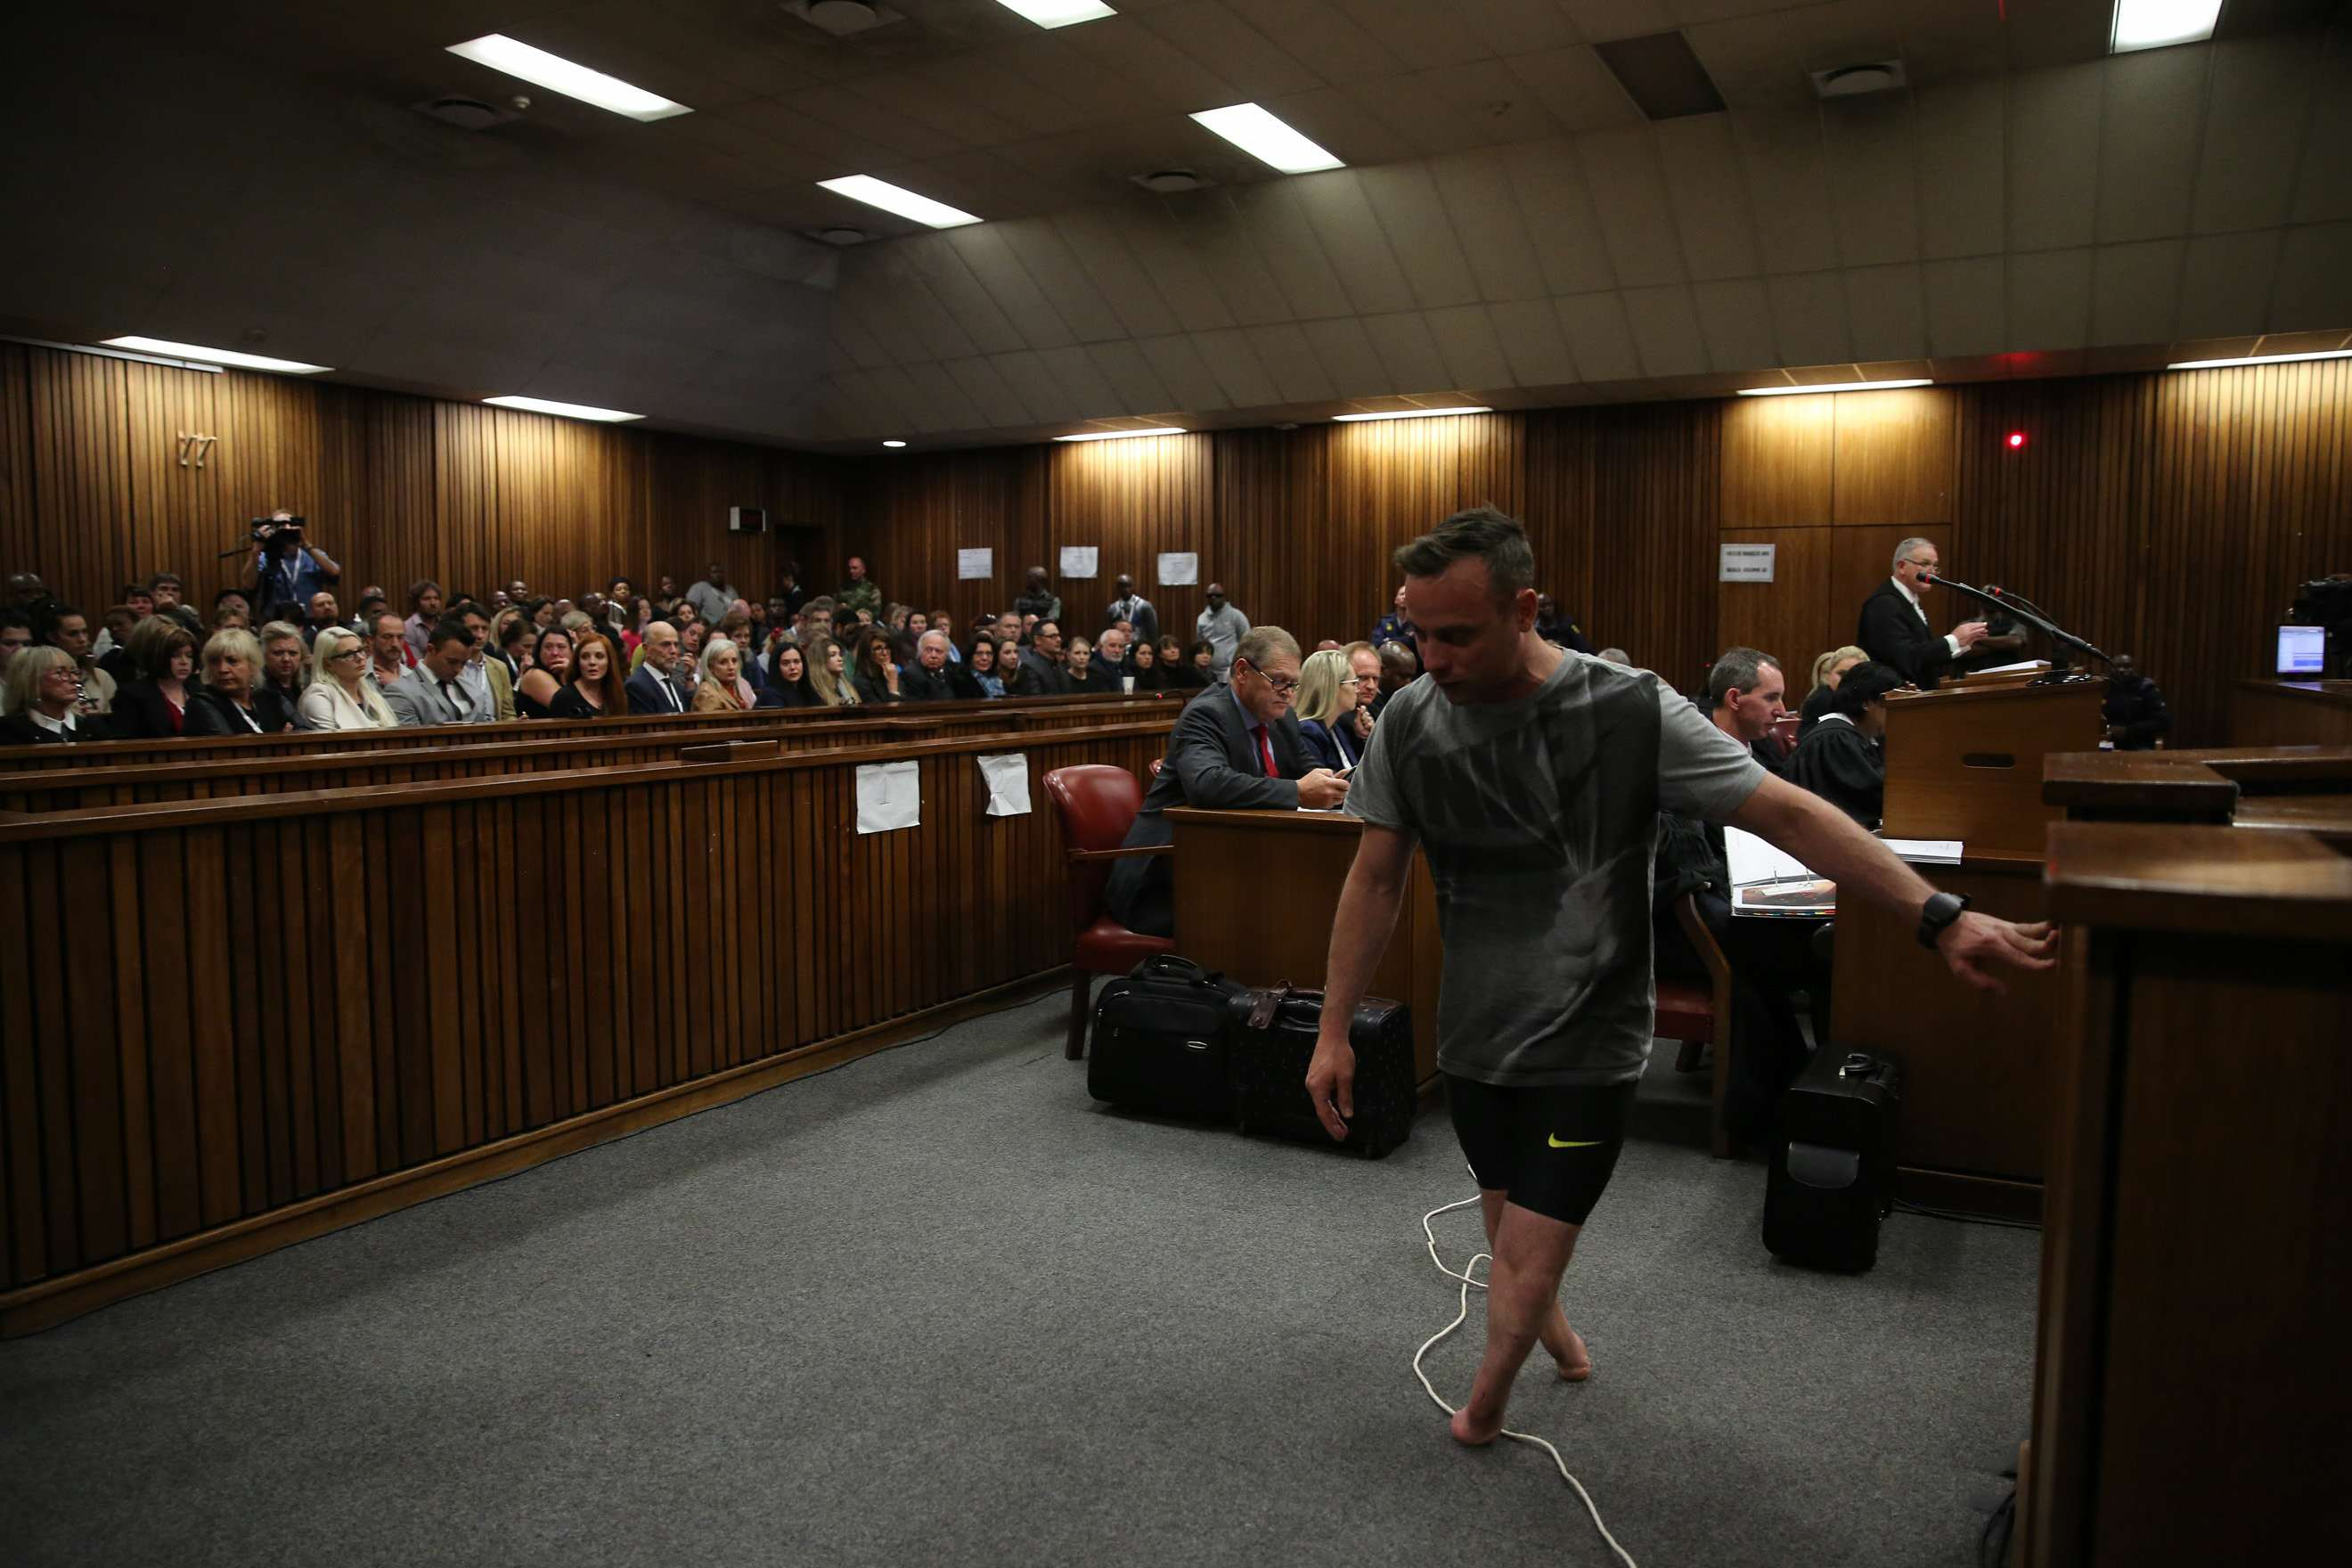 Oscar Pistorius Describes Moment He Shot Reeva Steenkamp GettyImages 540302436 1